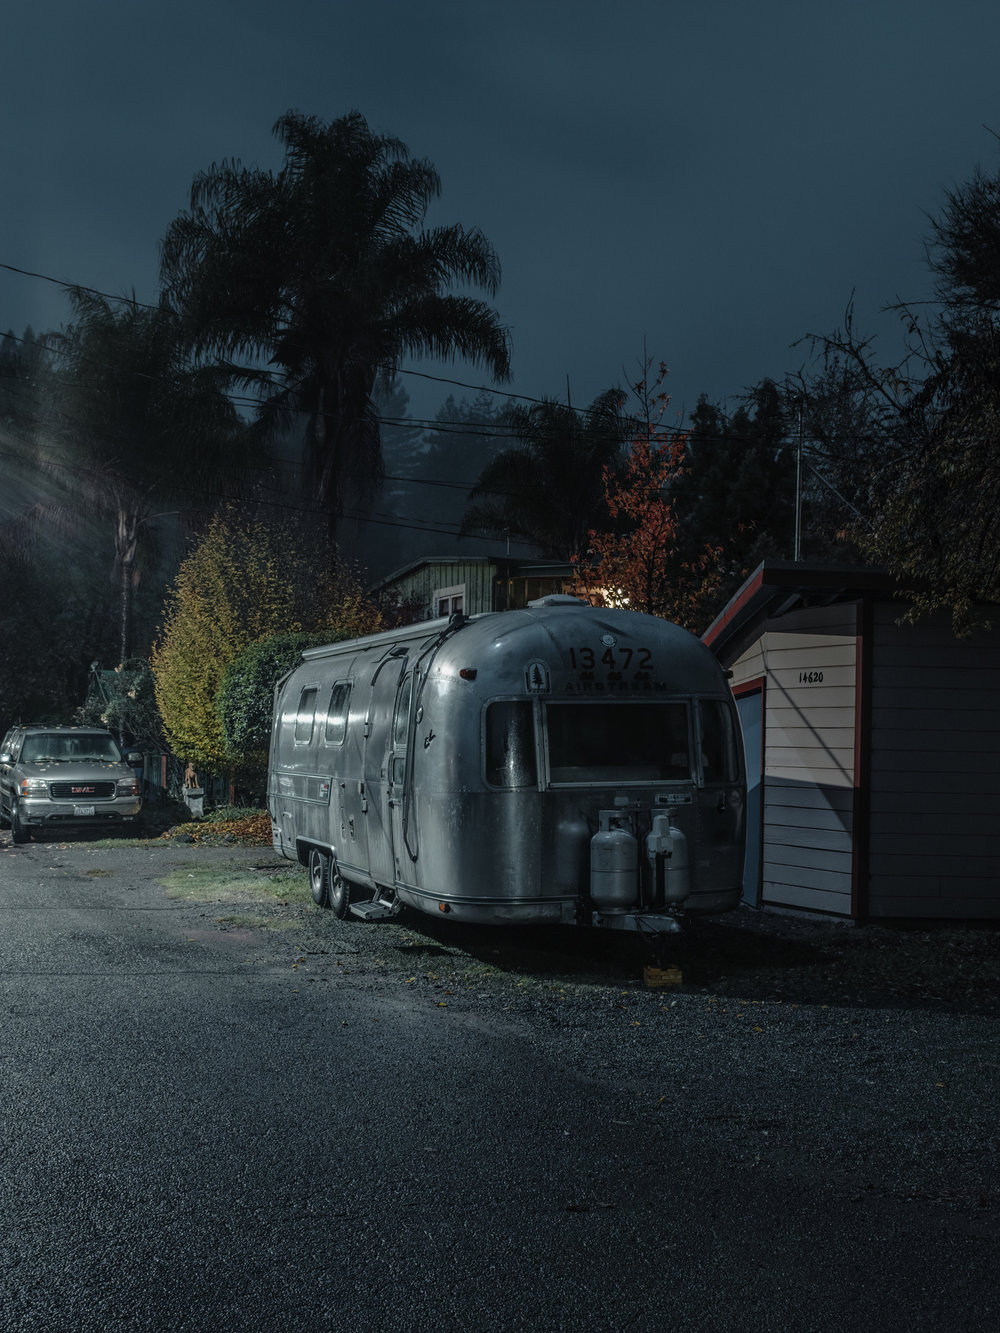 "Airstream, Guerneville, CA, 2018.  32"" x 24"", Limited Edition of 3. Archival Pigment Print, Hahnemuhle Fine Art Paper.   Pricing & Purchasing Info"